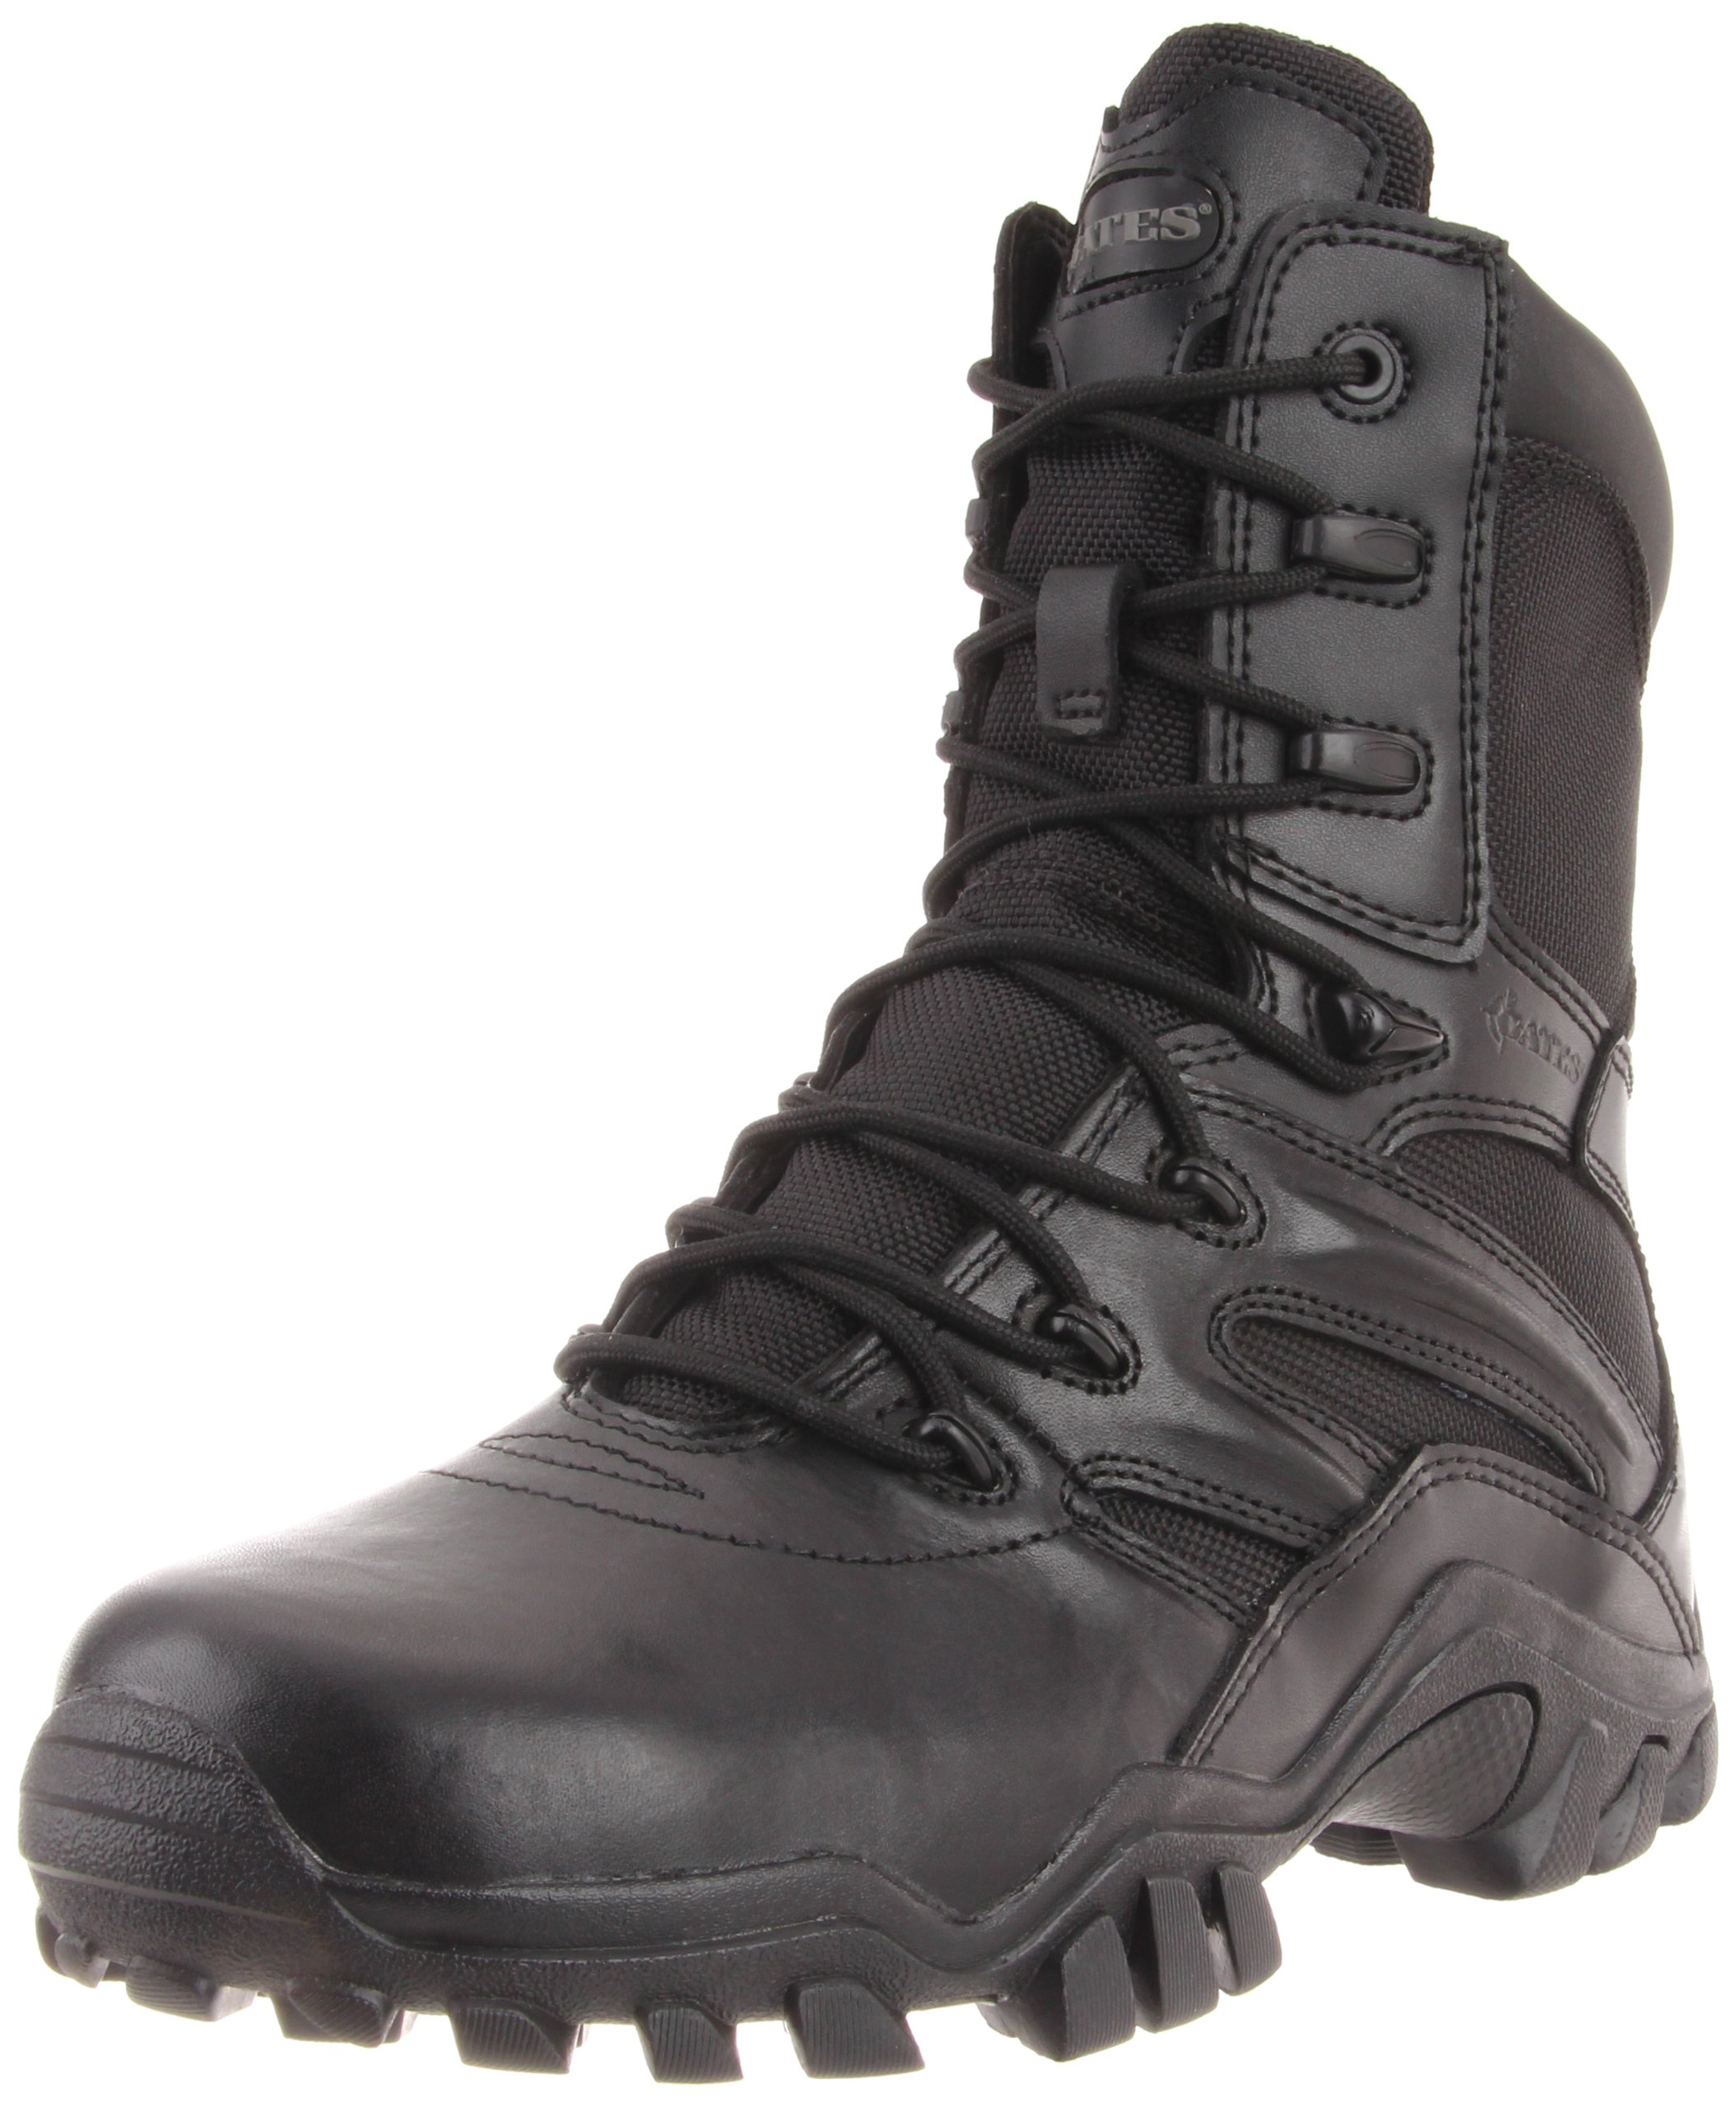 Bates Women's Delta 8 Inch Boot, Black, 8 M US by Bates (Image #1)